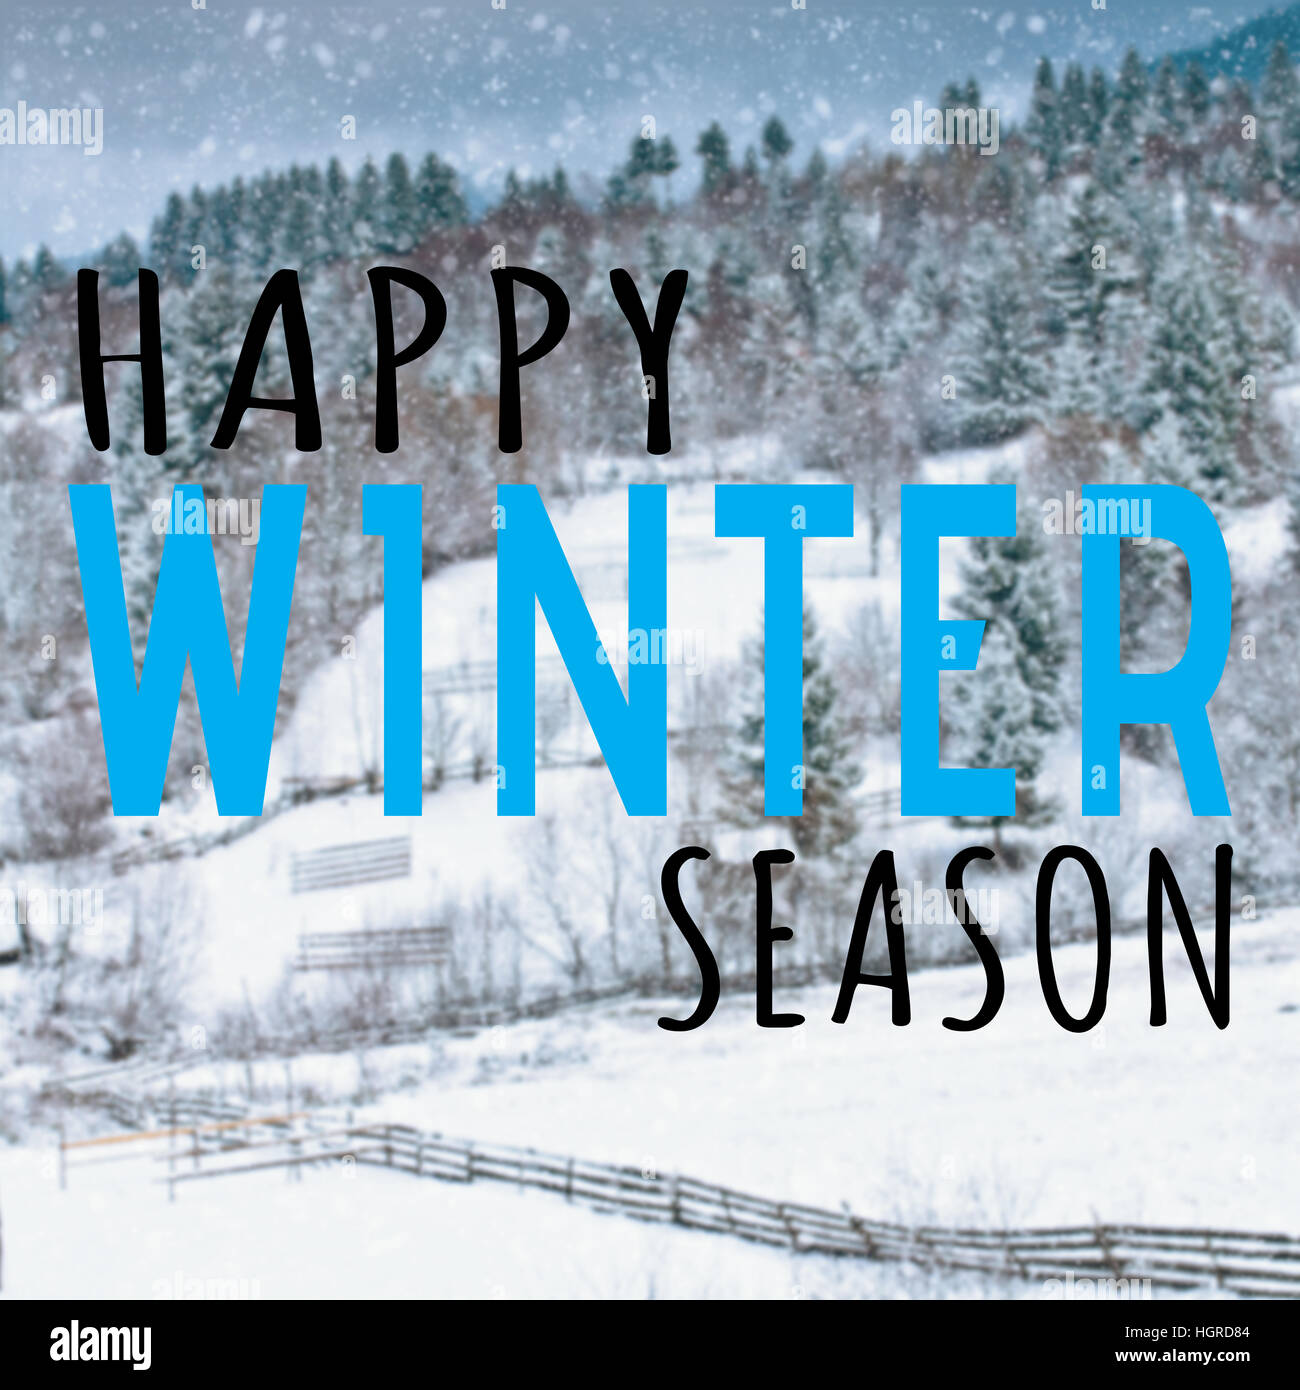 Happy winter season quote on blurred background with snow - Stock Image